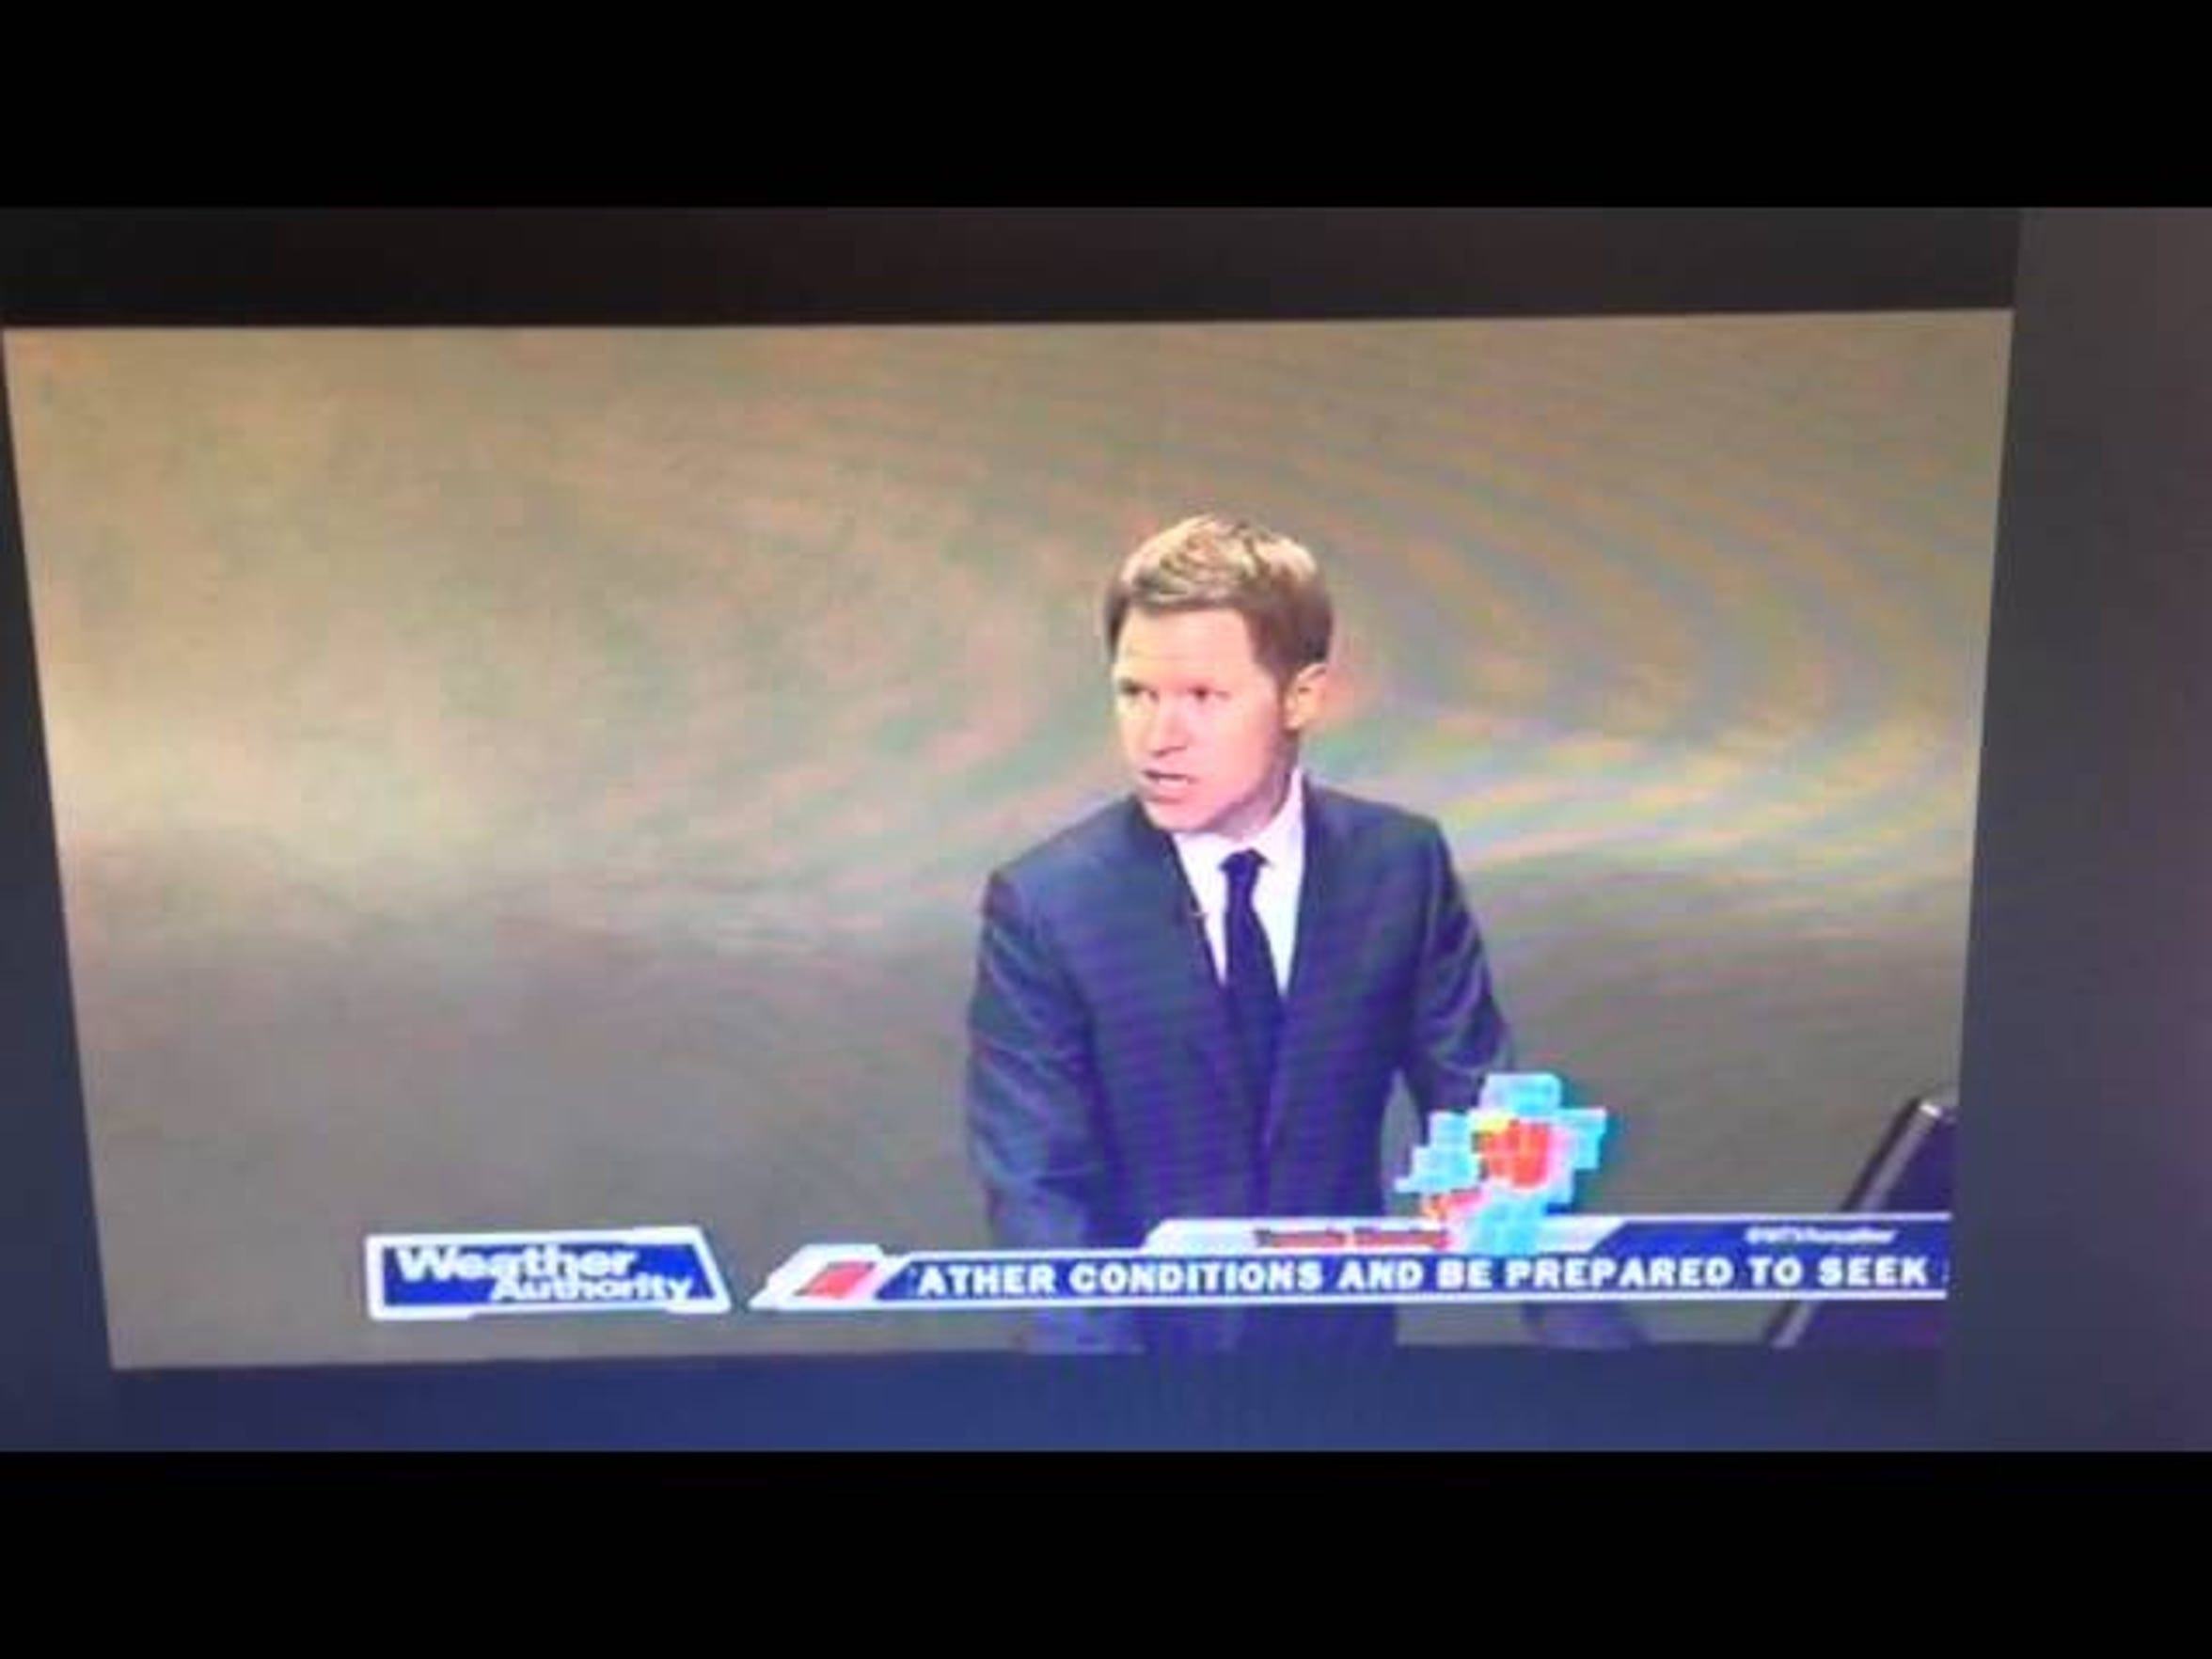 WTVA in Tupelo evacuates due to approaching tornad